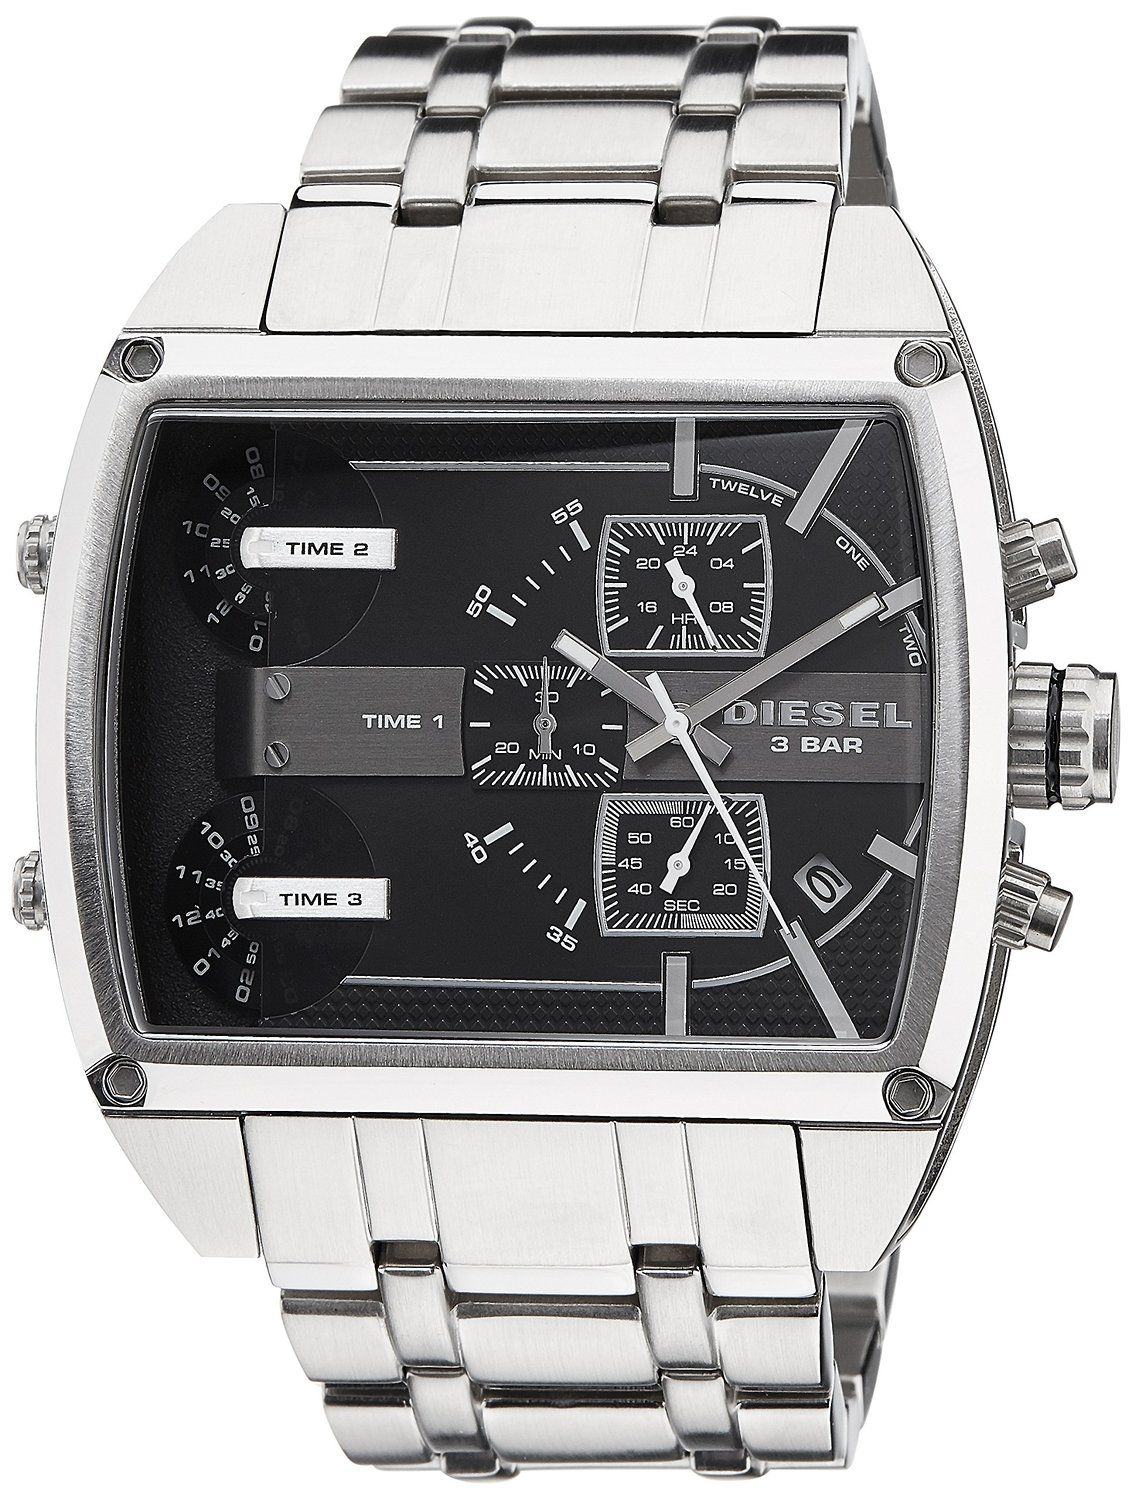 ecb1335eb34 Buy Diesel Tank Series Chronograph Black Dial Men s Watch - DZ7324 Online  at Low Prices in India - Amazon.in